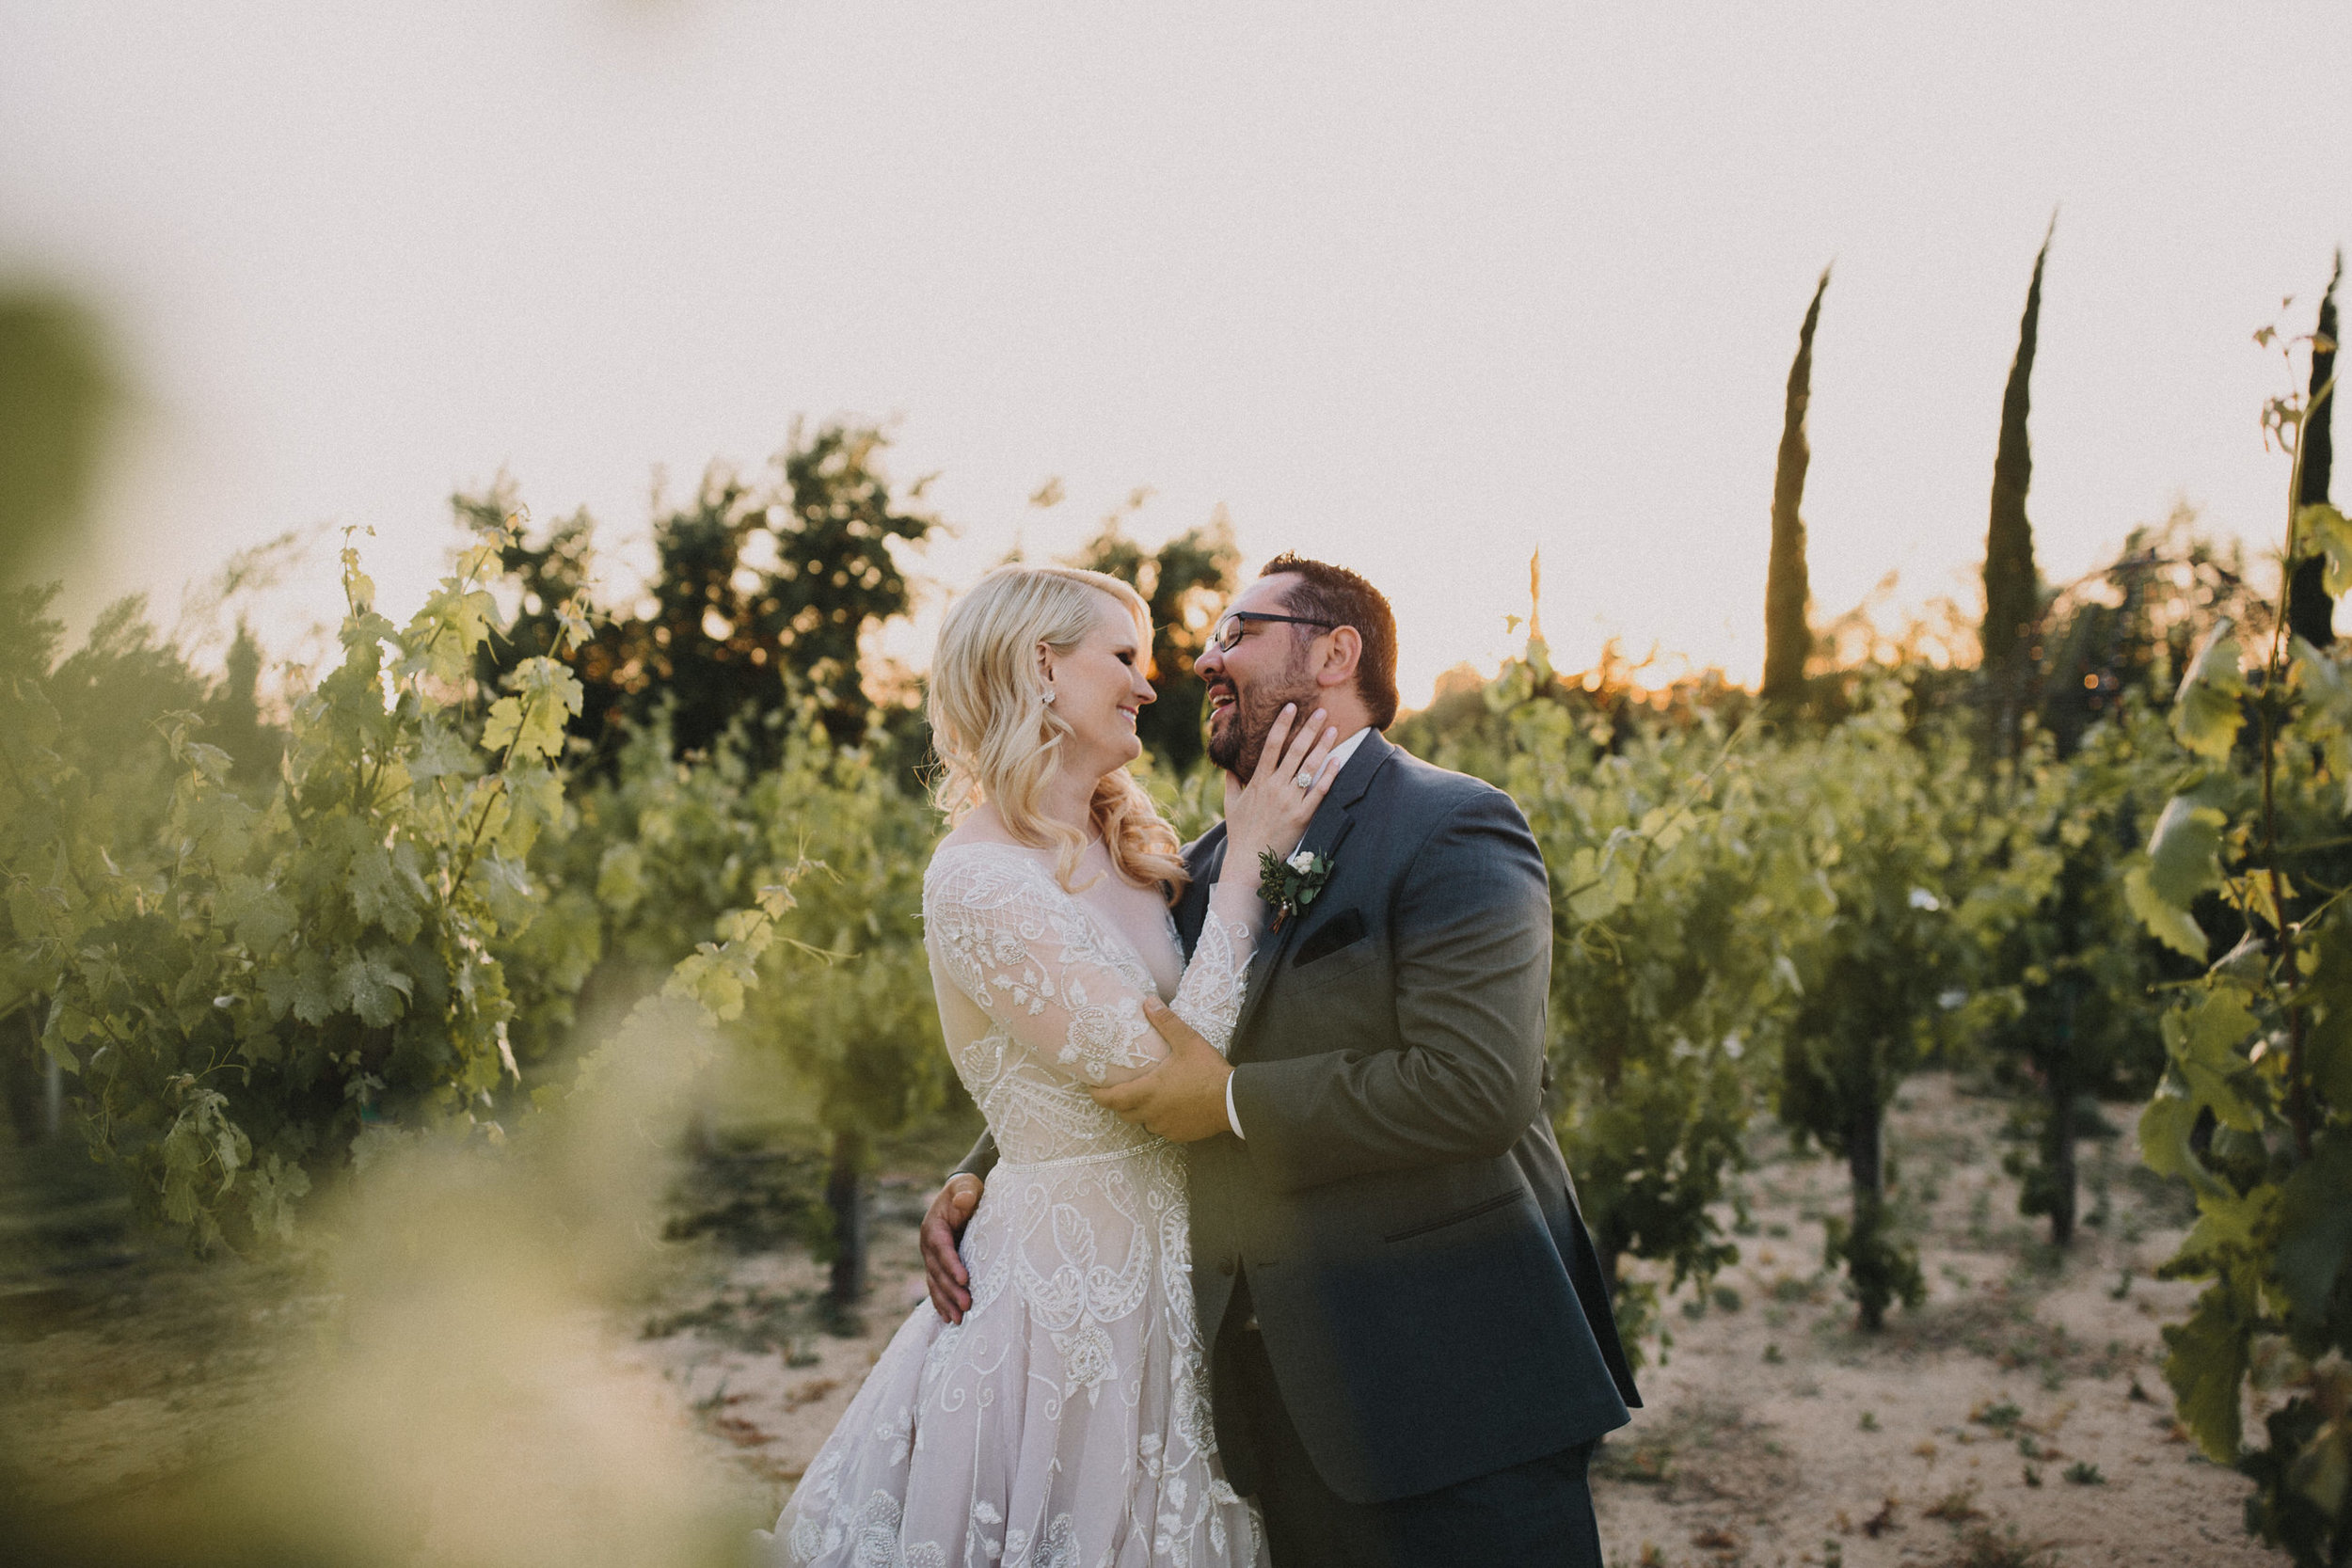 Stephanie + Charles - Mount Palomar Winery Wedding-41.jpg